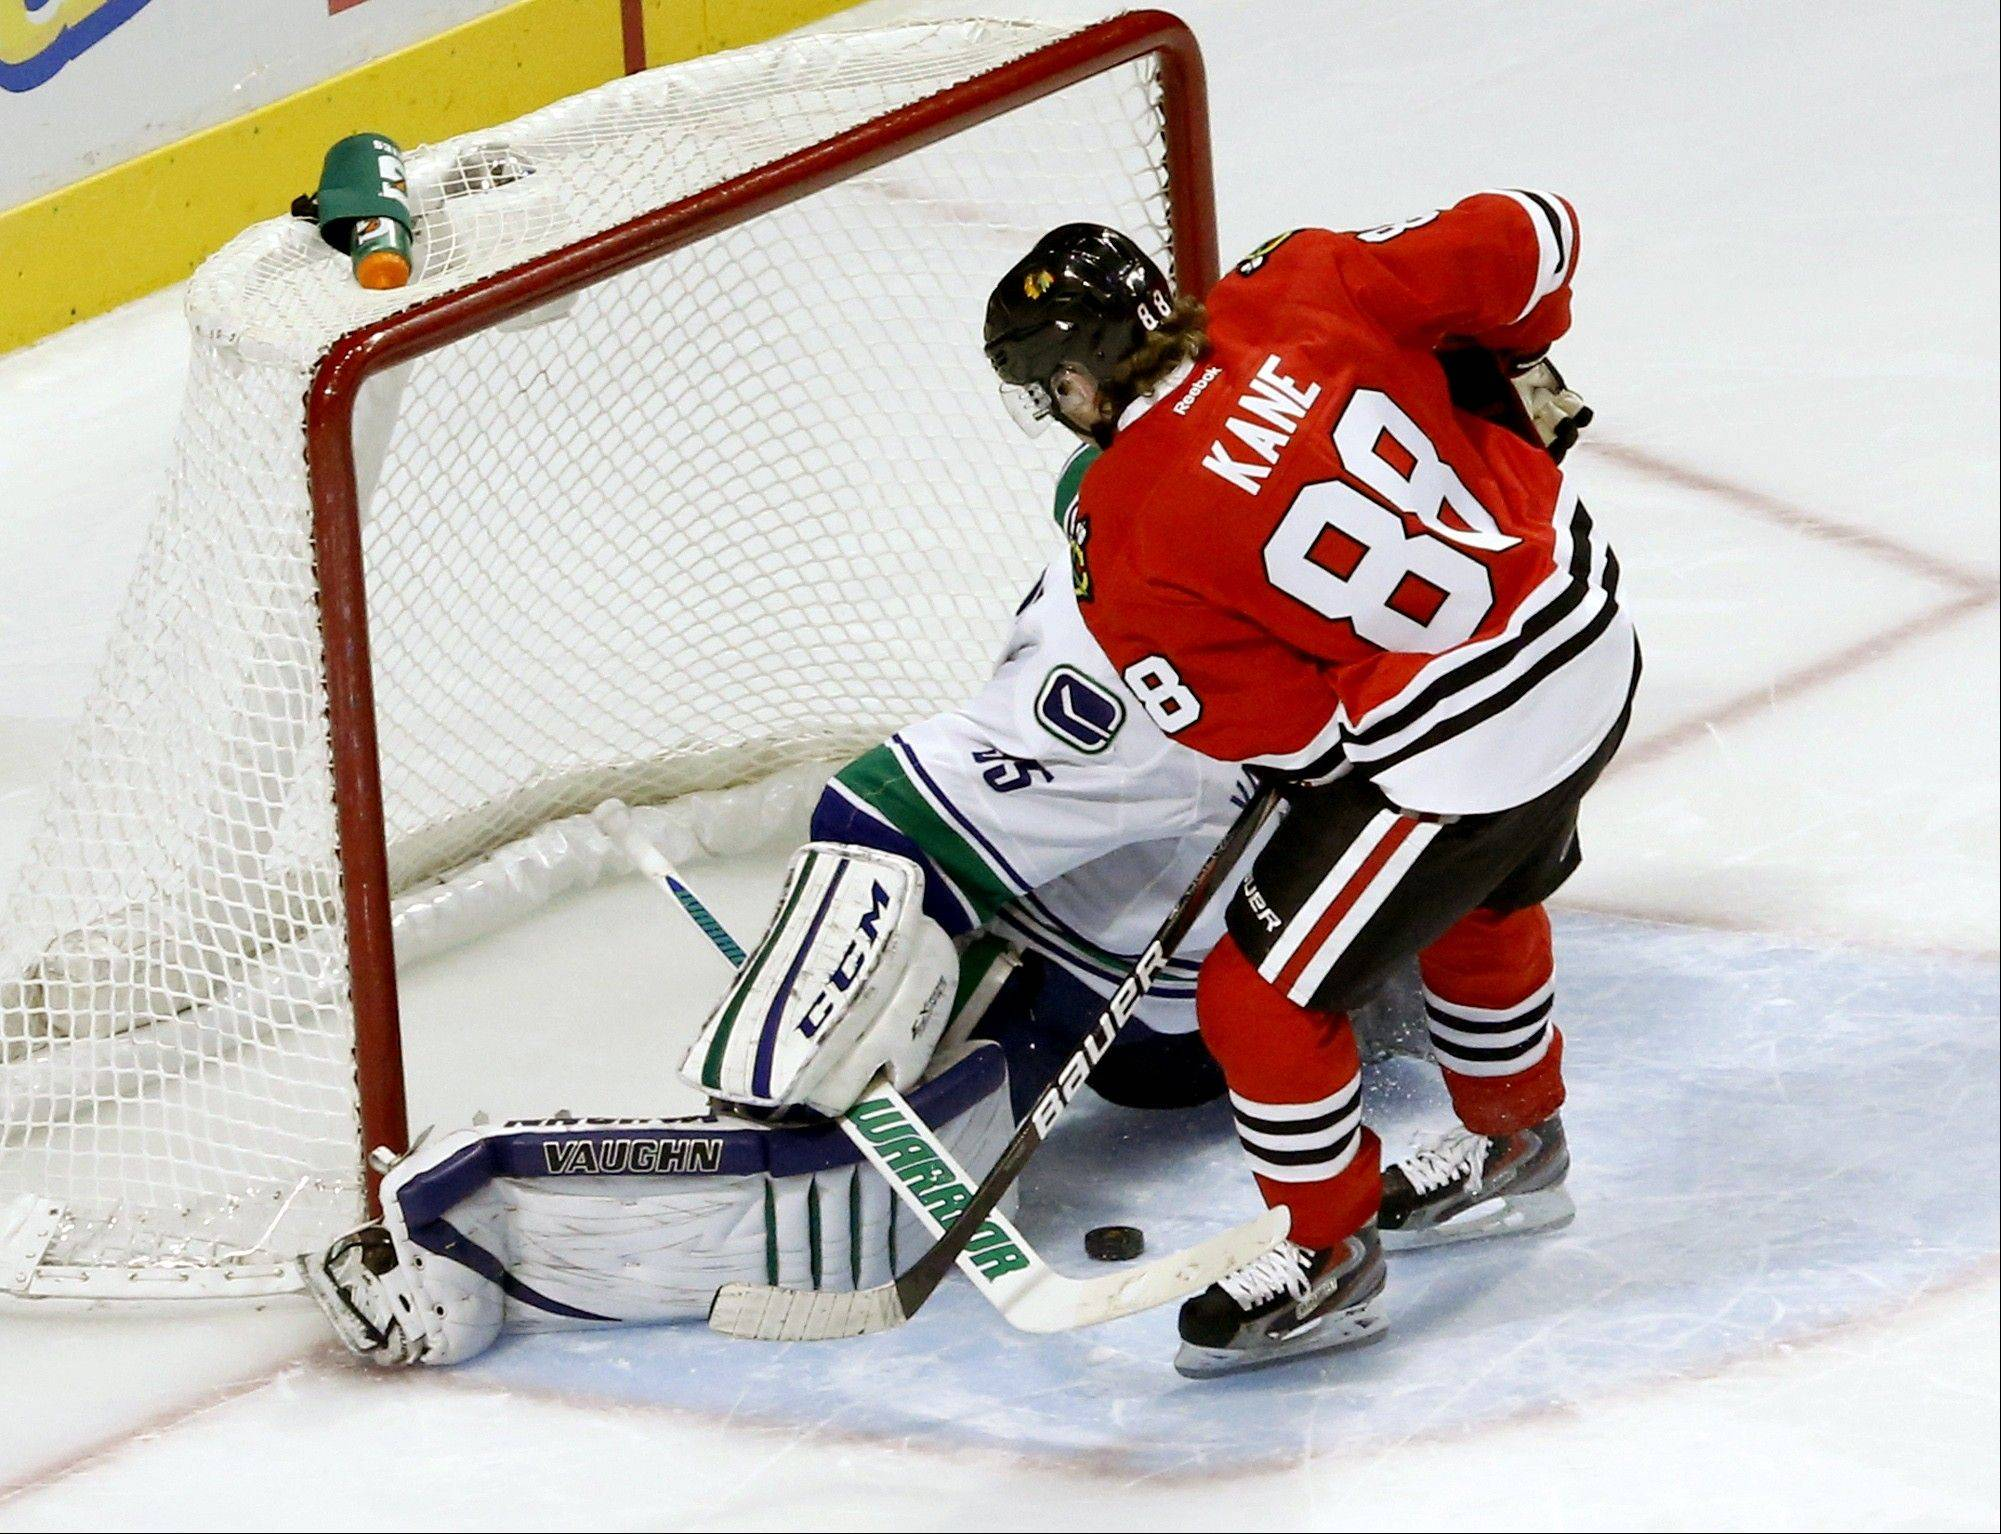 Blackhawks right wing Patrick Kane, here scoring against Vancouver goalie Cory Schneider during a shootout, says it would be �kind of cool� to own the NHL team record for most games to start a season without a loss in regulation.